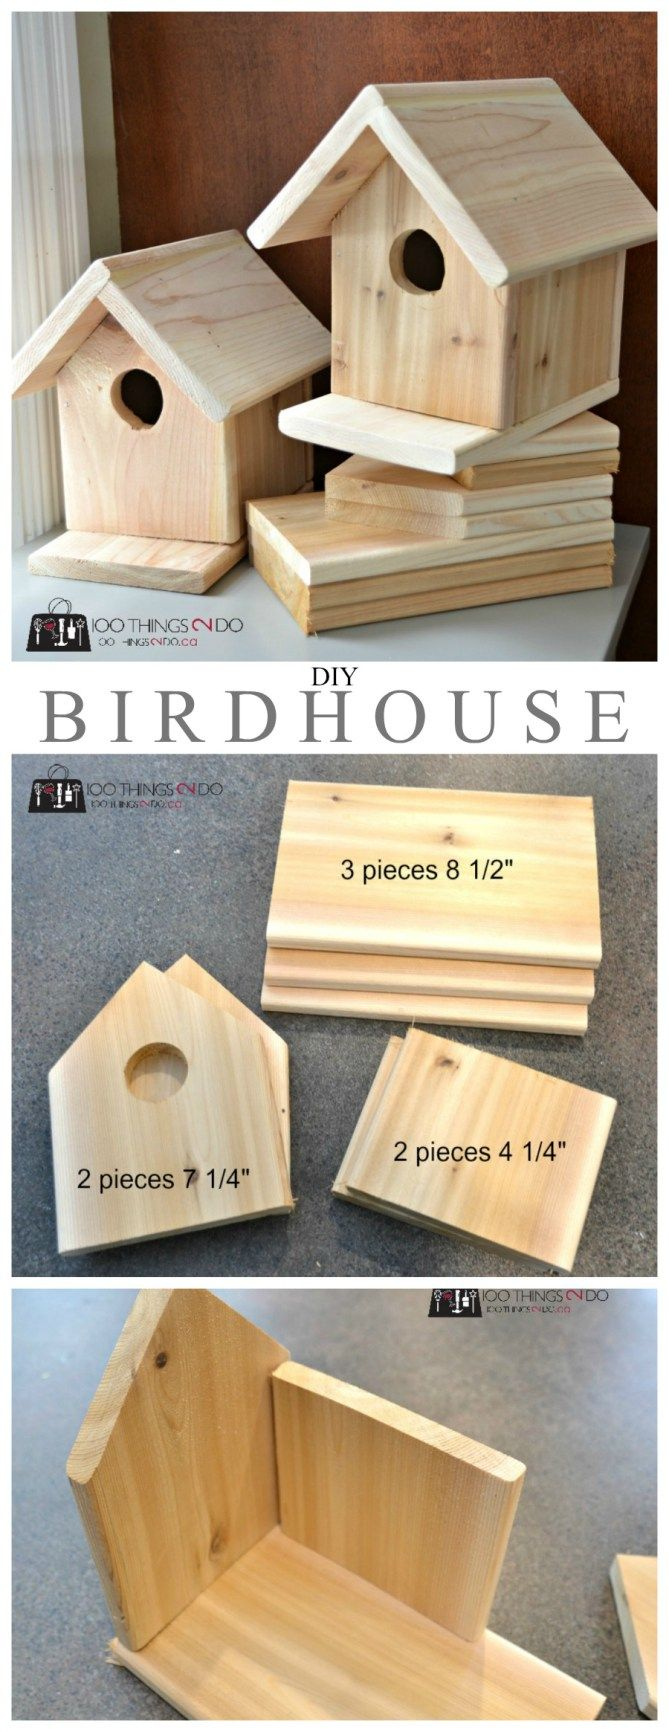 DIY Birdhouse | Diy birdhouse, Birdhouse and Bird houses